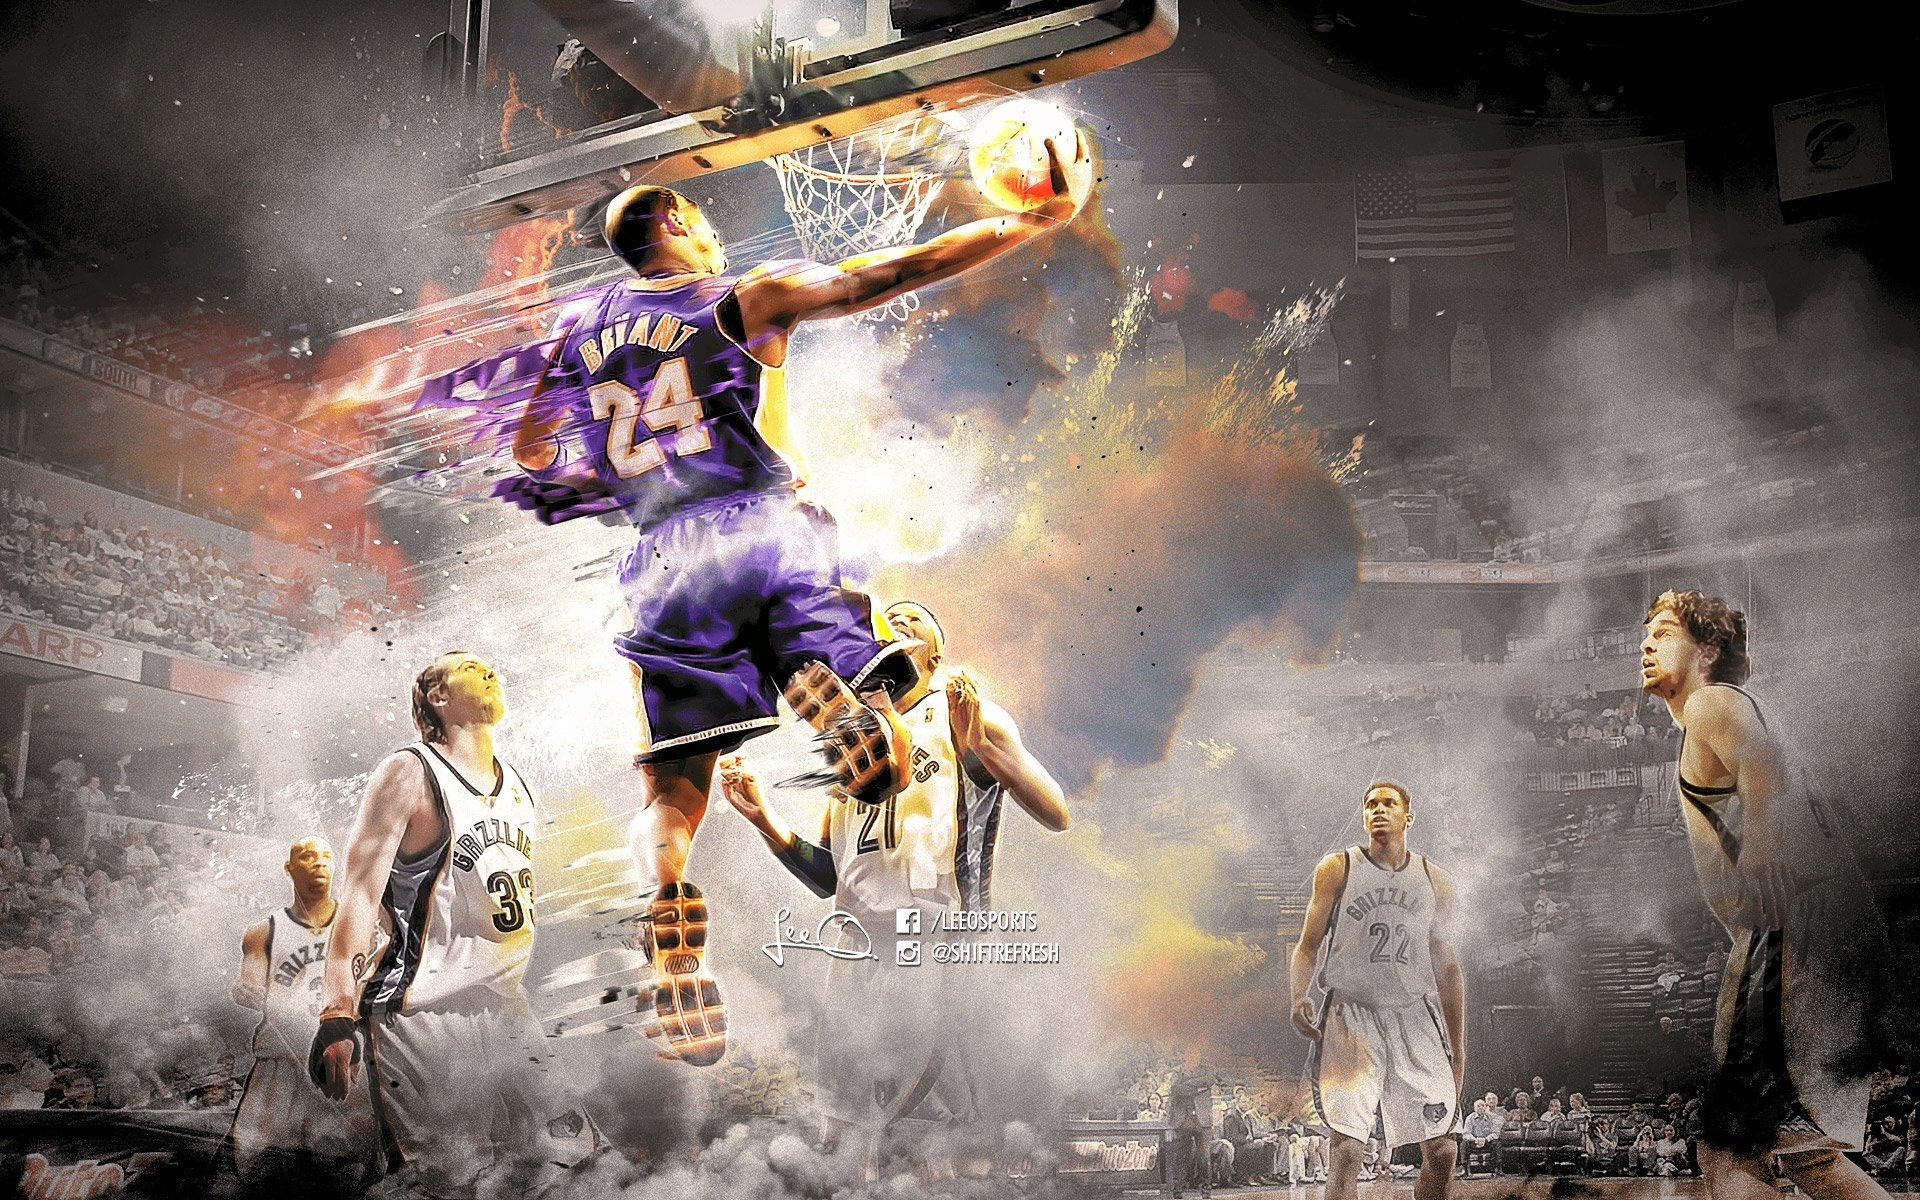 31 kobe bryant hd wallpapers | background images - wallpaper abyss